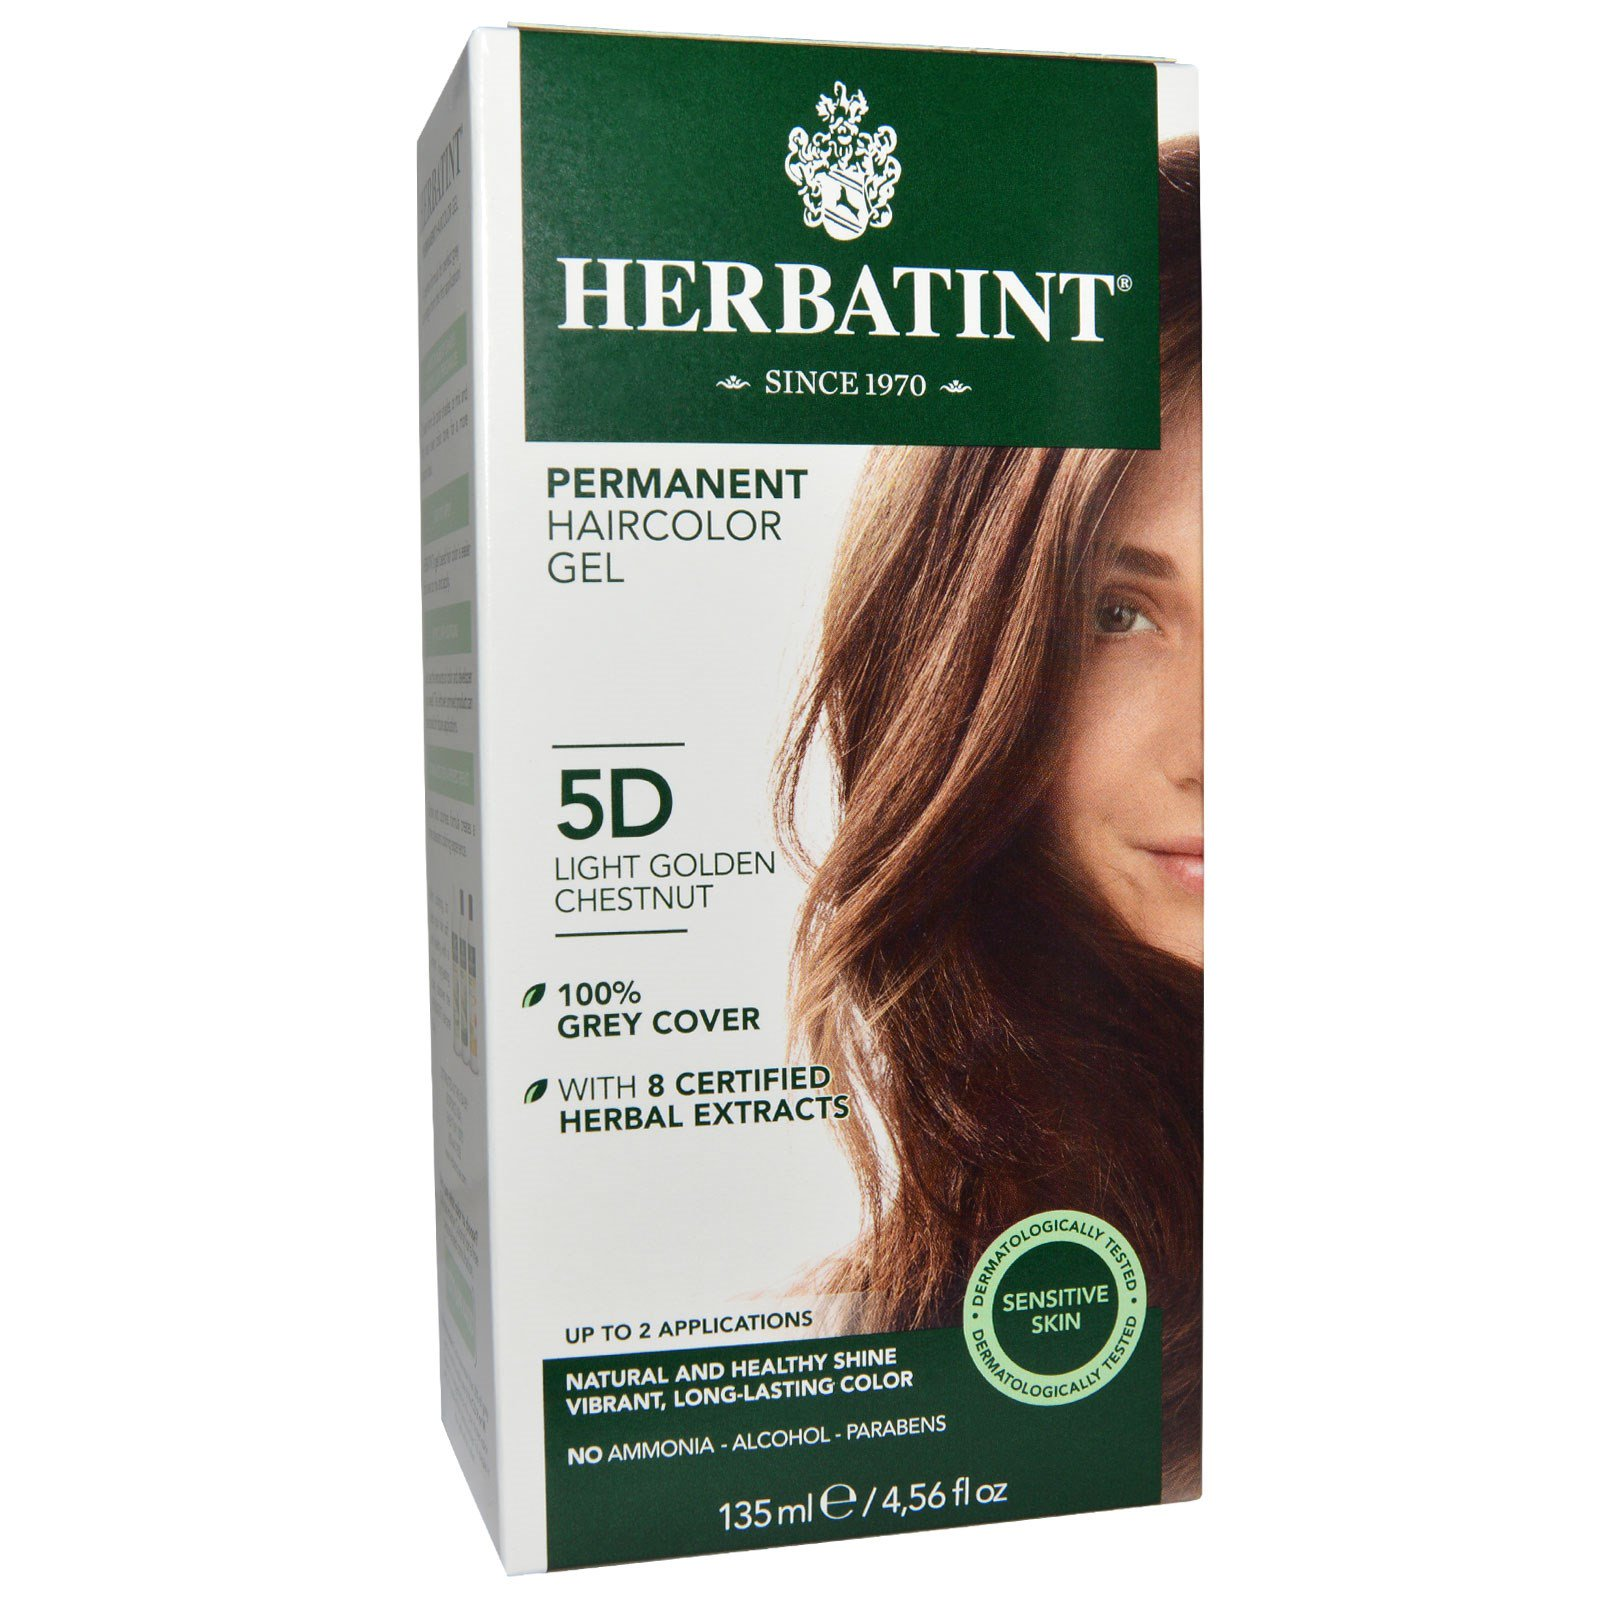 Herbatint, Permanent Haircolor Gel, 5D, Light Golden Chestnut, 4.56 ...